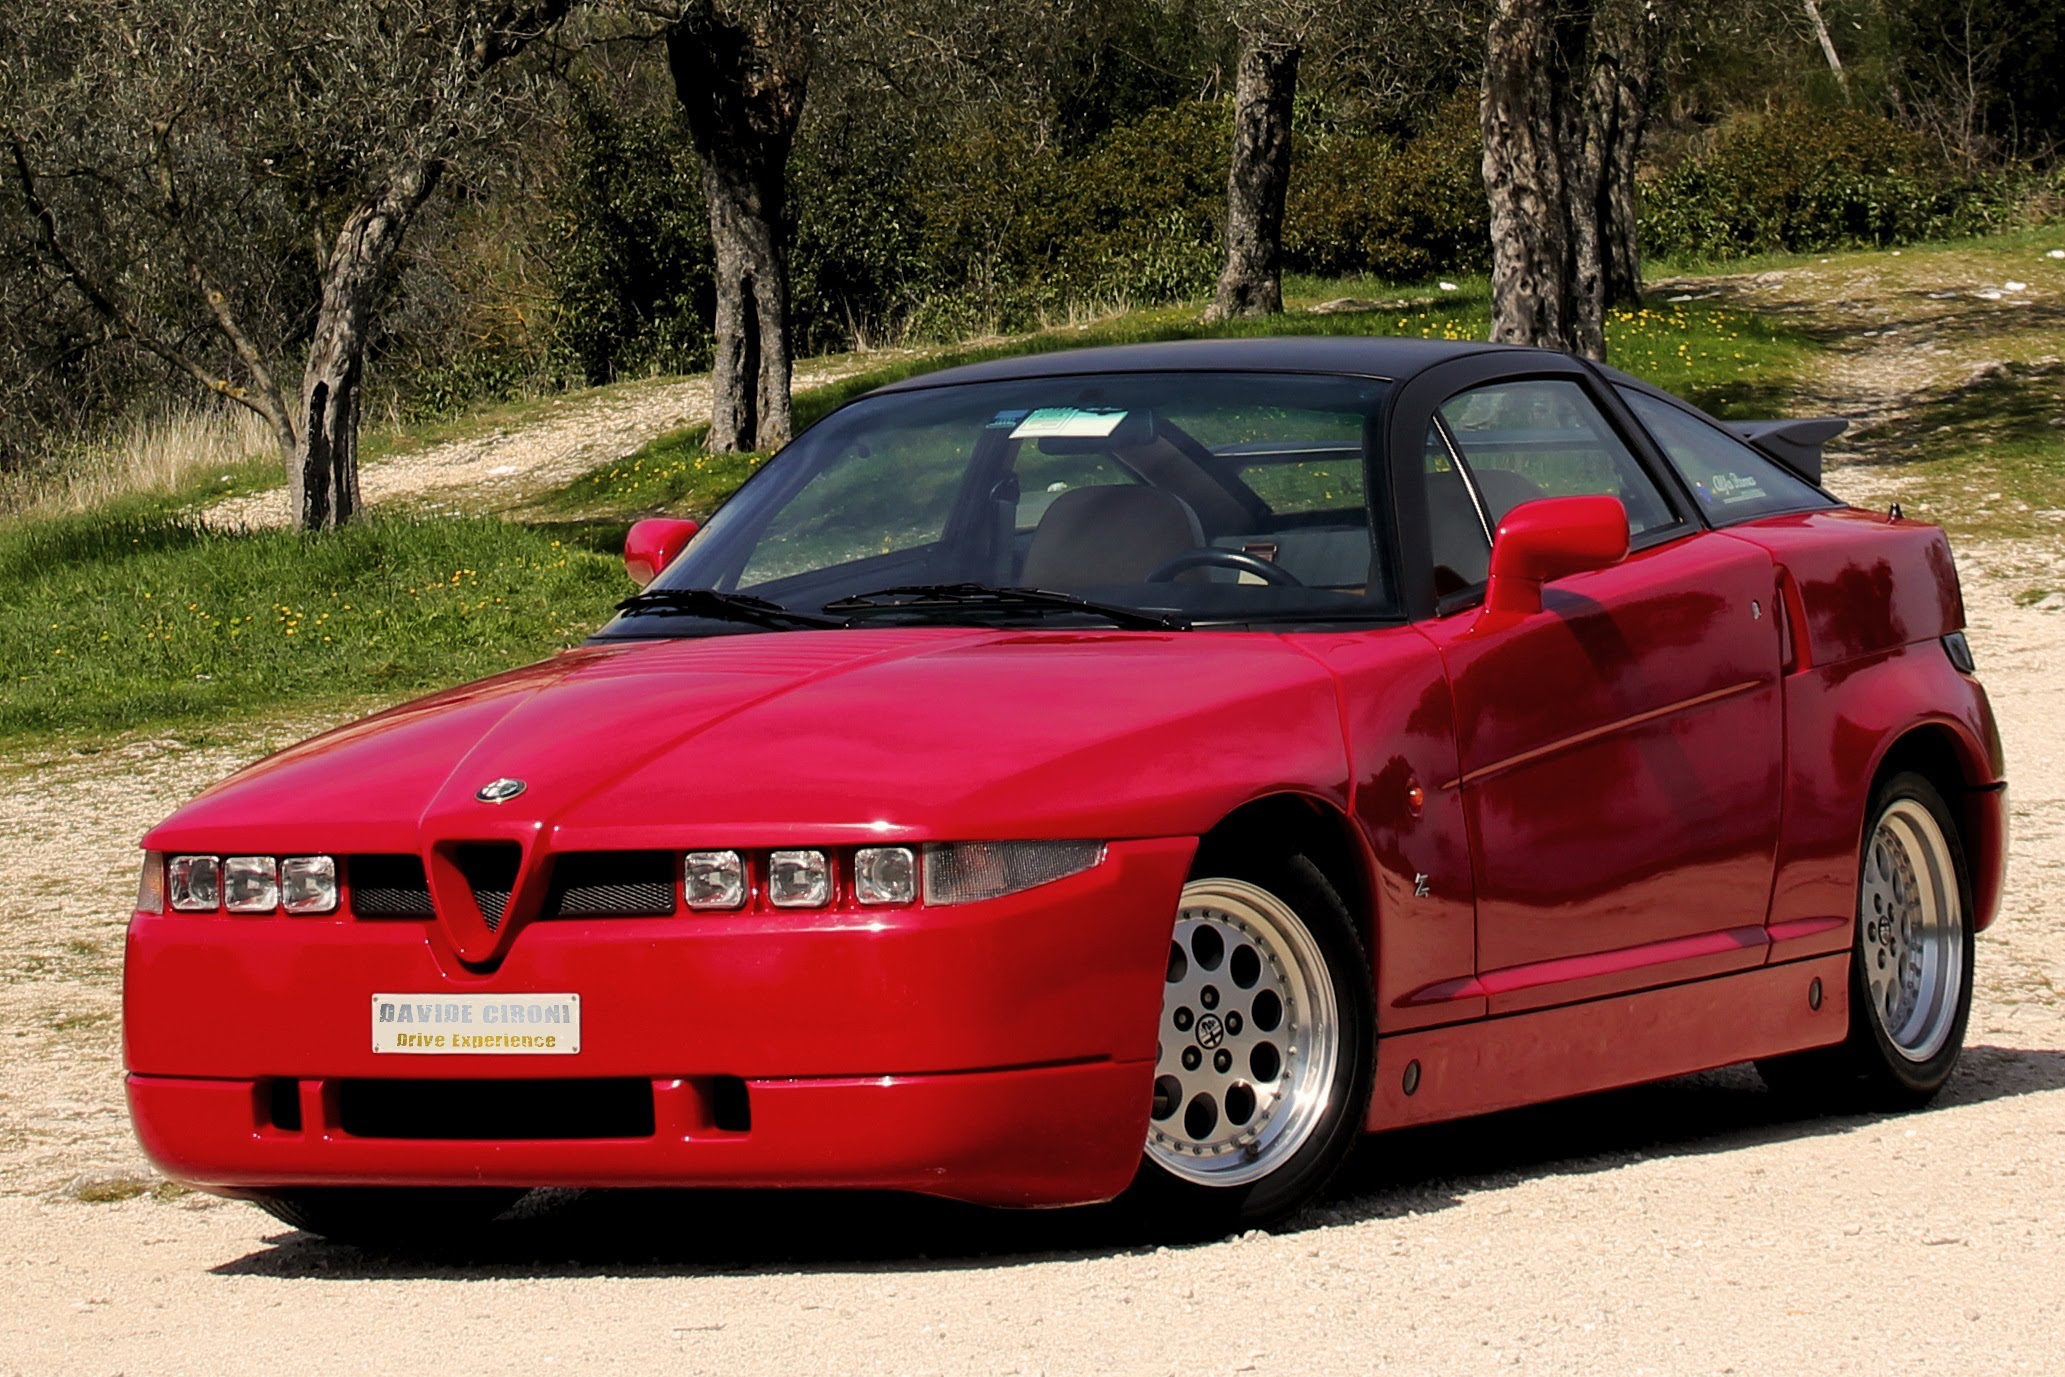 From some angles the Alfa Romeo looked purposeful, from others...not so much